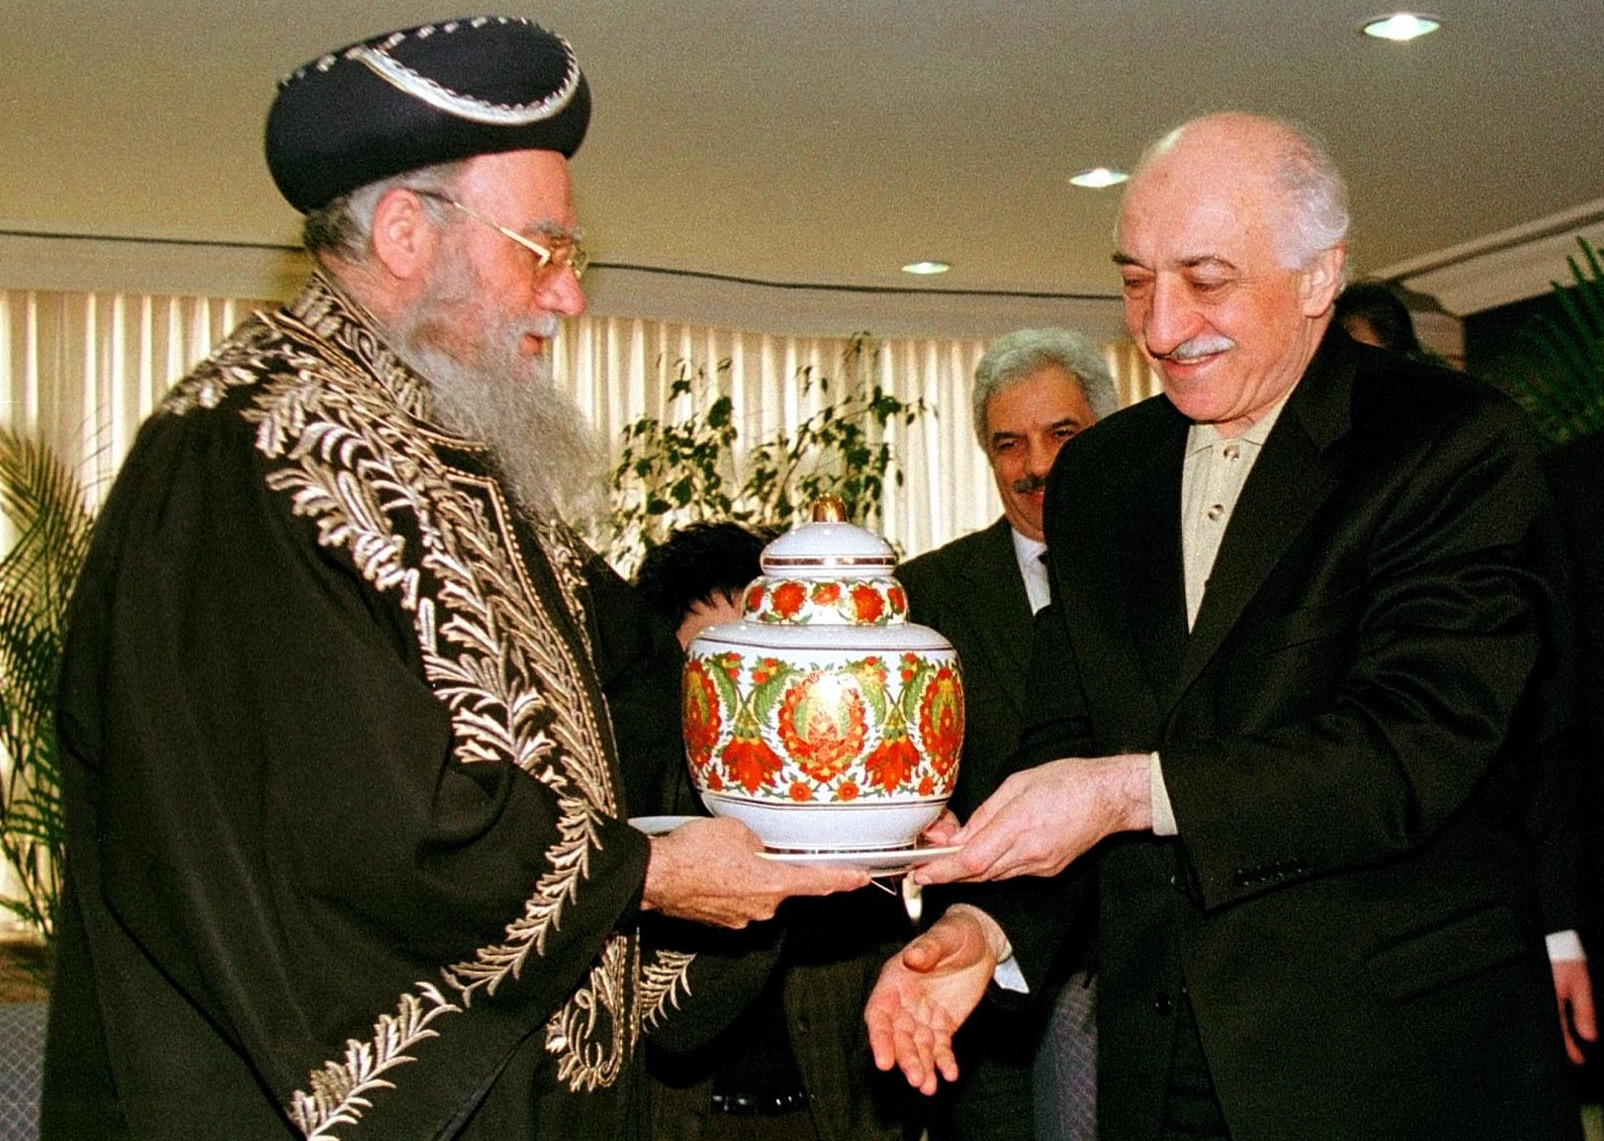 Muslim cleric Fetullah Gulen (right) receives a vase from Israel's Chief Rabbi Eliyahu Bakshi Doron during a meeting in Istanbul, Turkey, in 1998. Turkey's President Recep Tayyip Erdogan on Saturday accused Gulen of involvement in a coup attempt, a charge Gulen denied. MURAD SEZER/AP